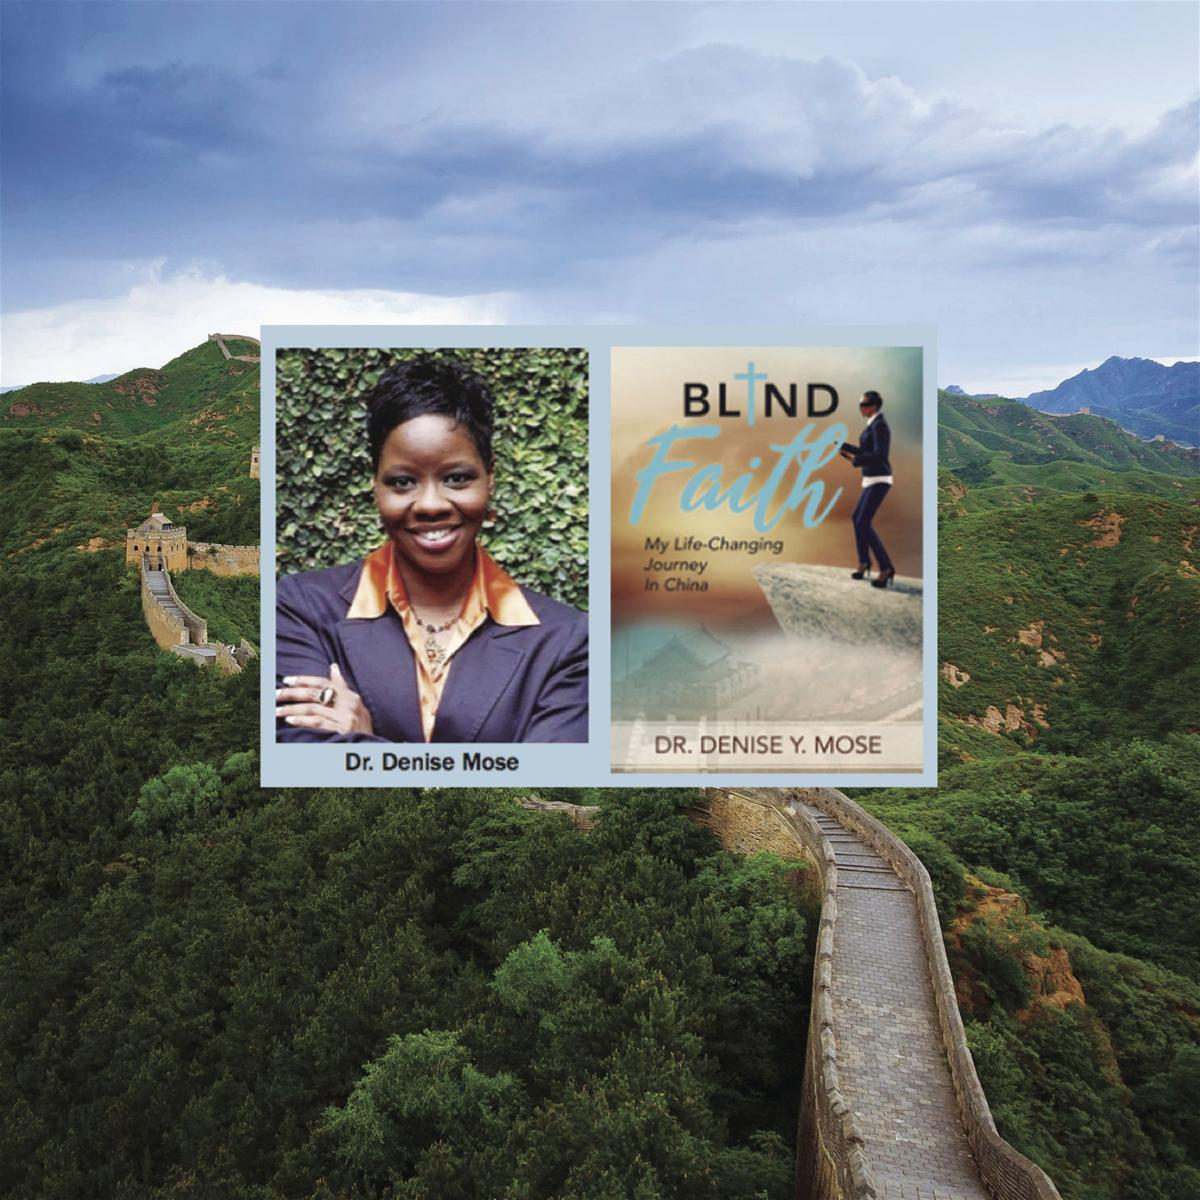 Denise Mose in China